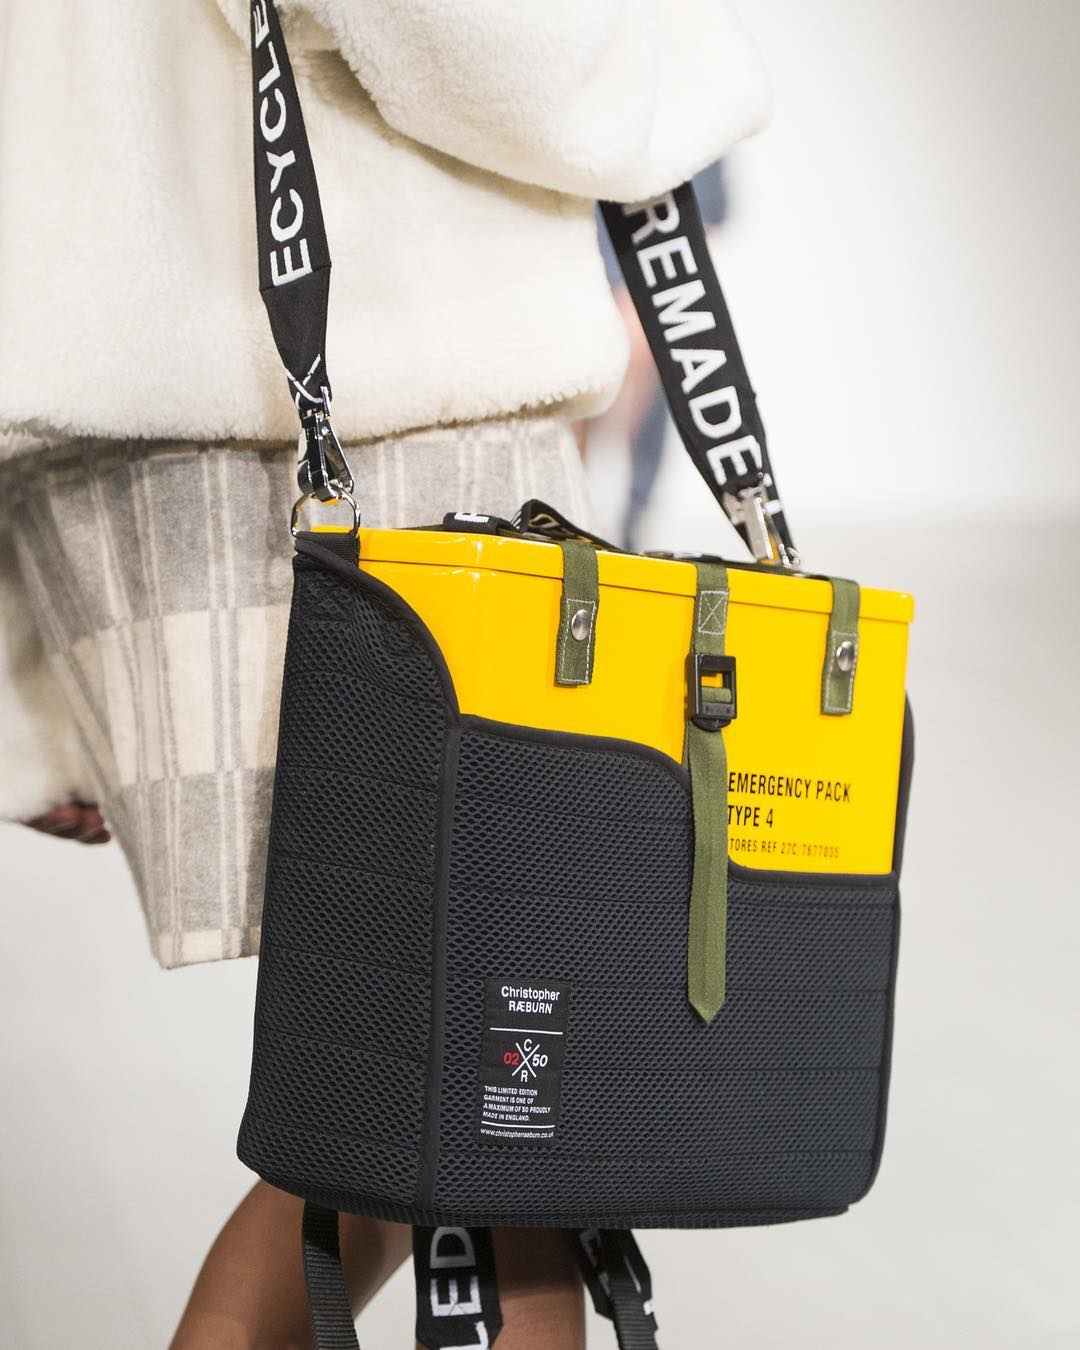 Safety Pack.  Nikeisha Nelson  and Royal College of Art collaboration. REMADE from an original RAF helicopter emergency pack.